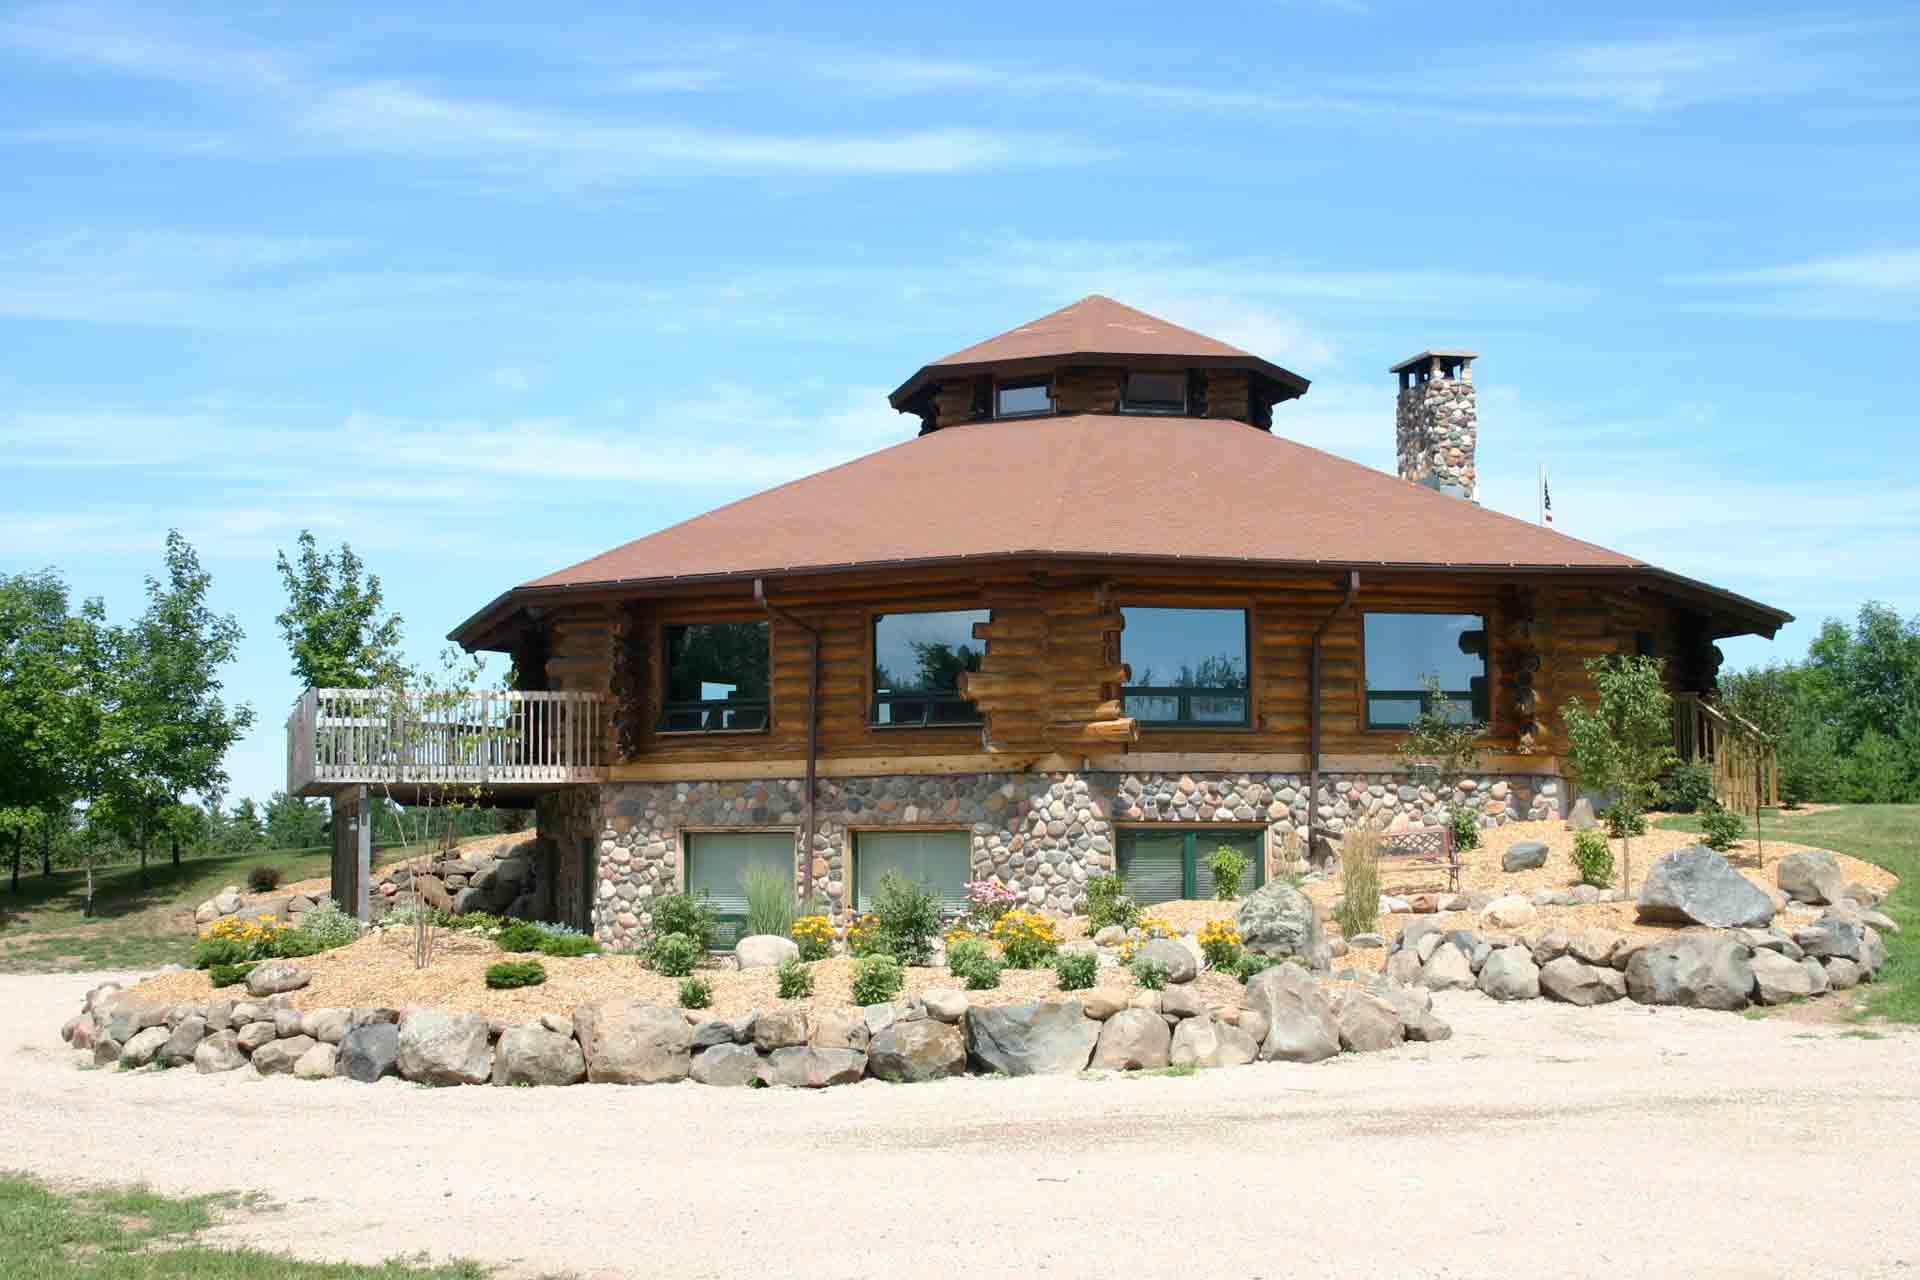 Wilderness Fellowship Retreat / Meeting Facilities - Where groups can meet and enjoy the panoramic beauty of God's creation